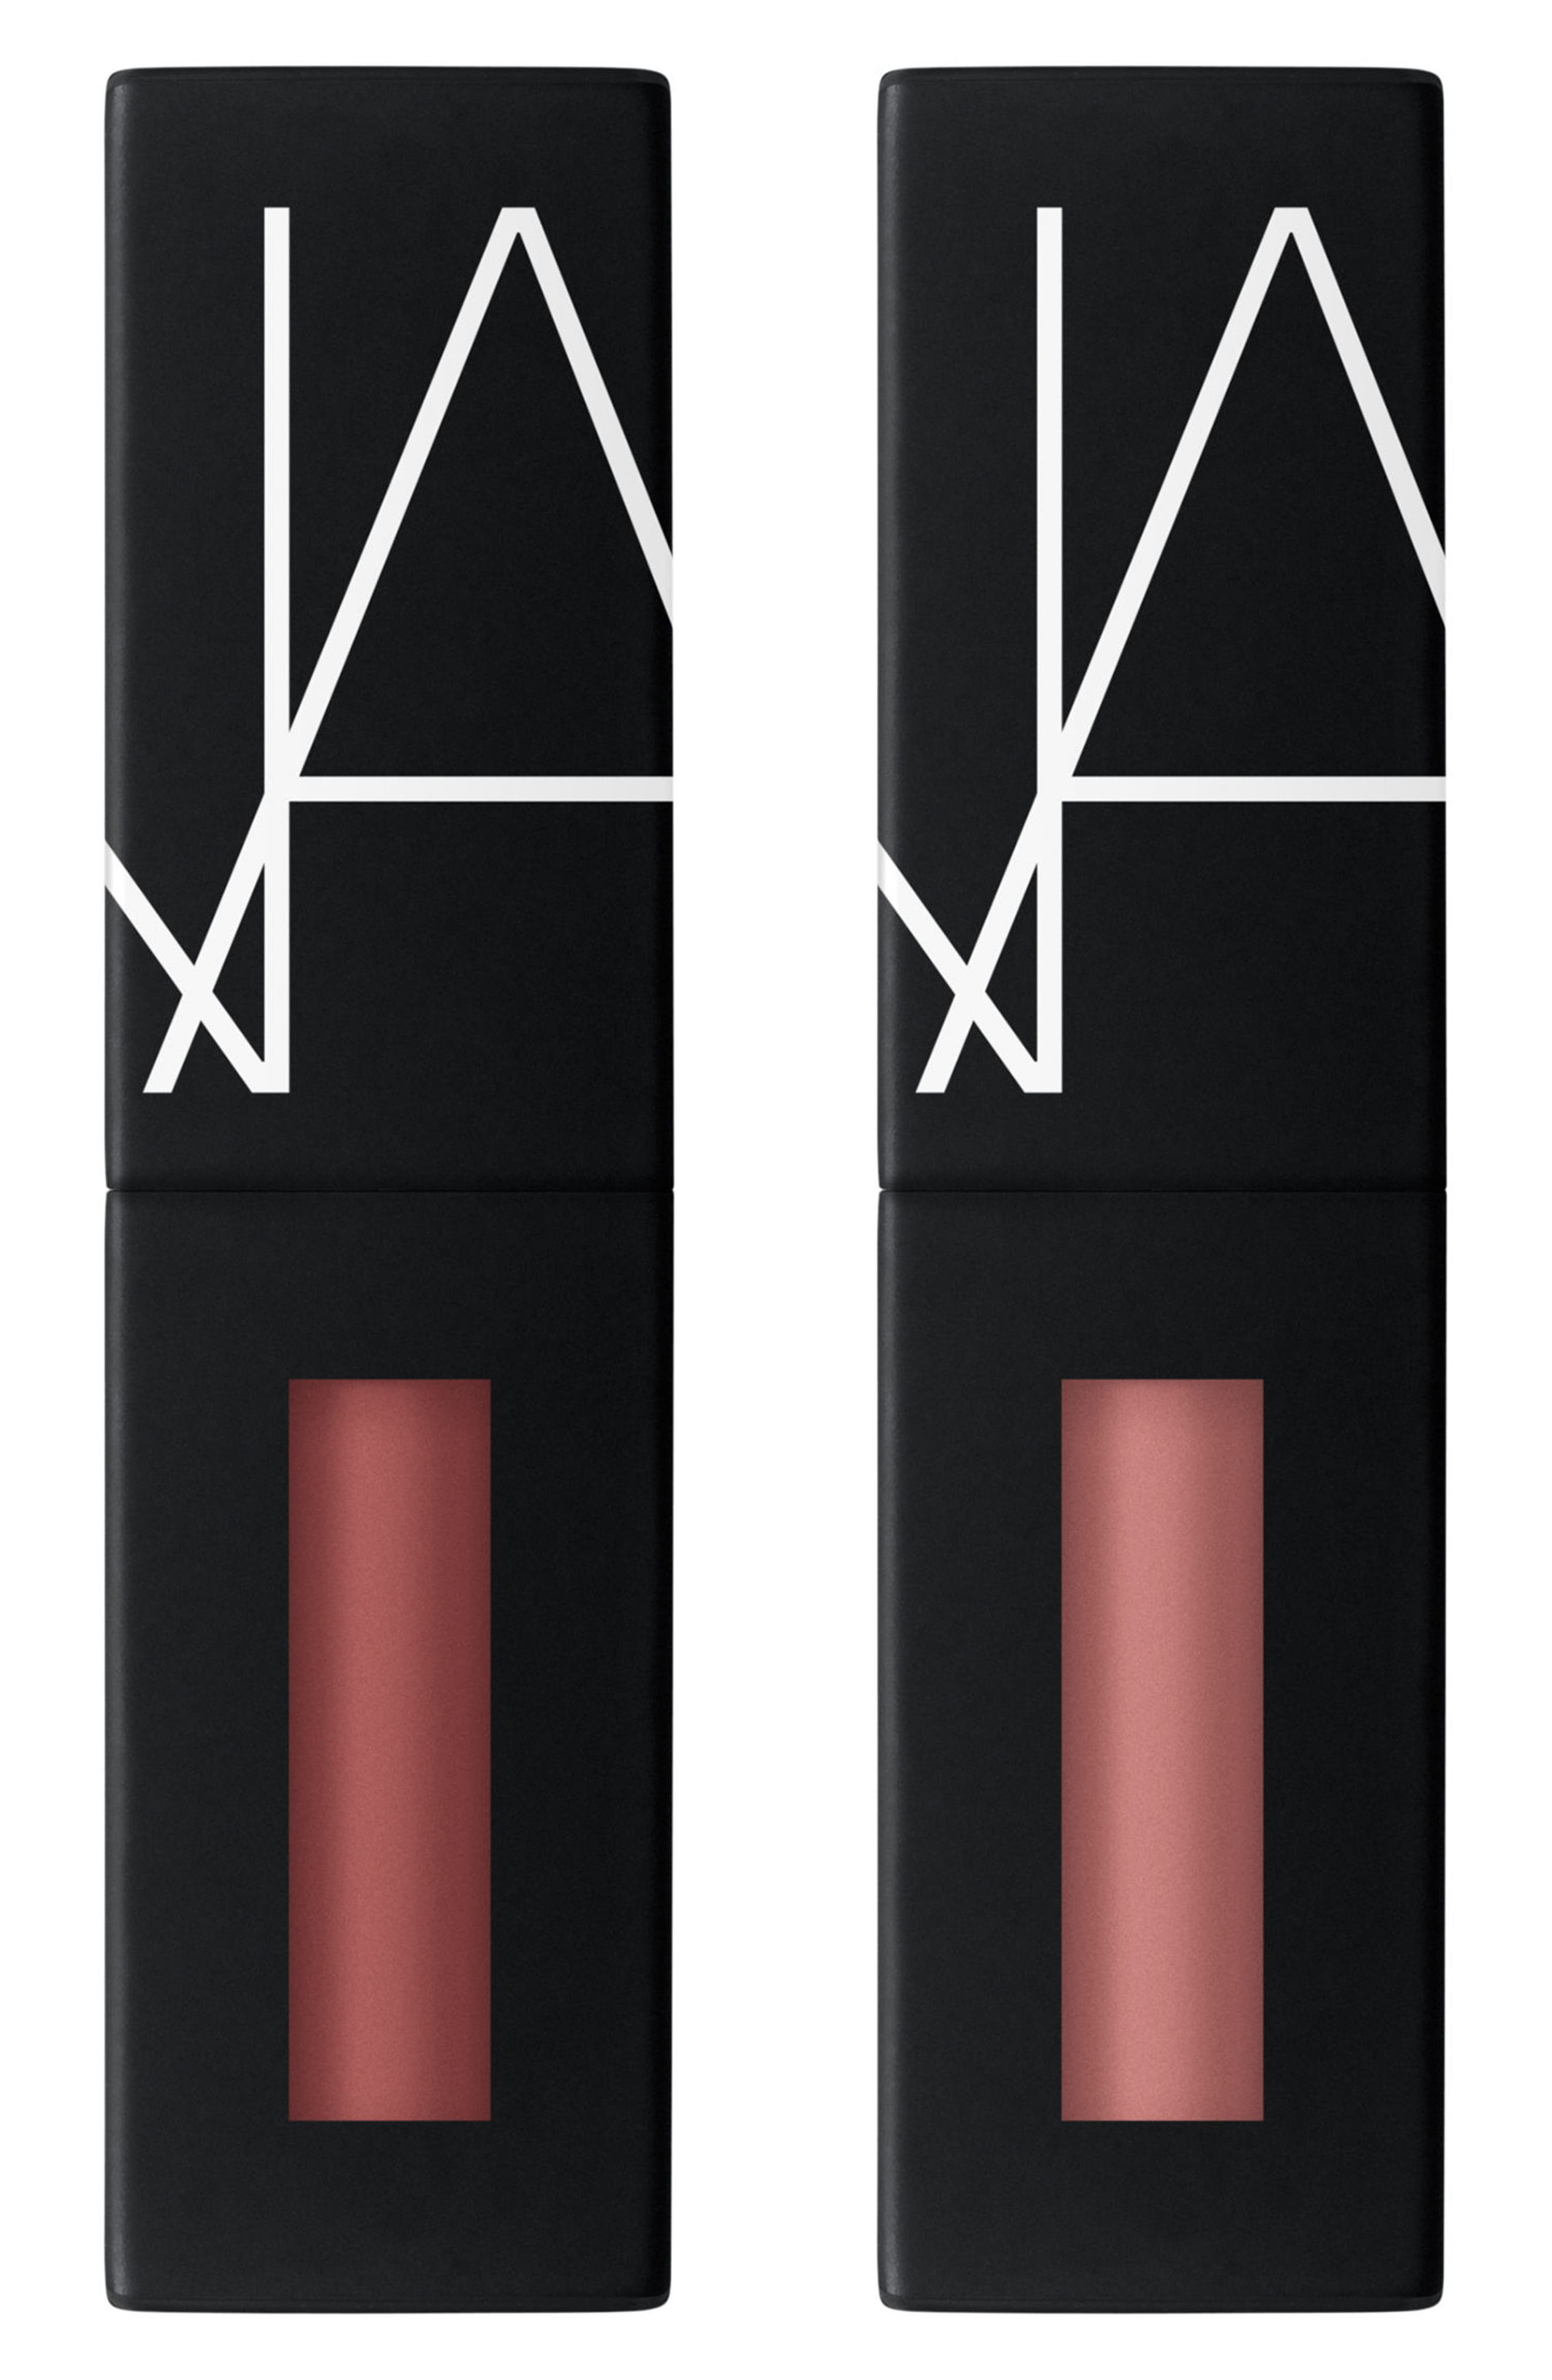 NARS Wanted Power Pack Lip Kit (Limited Edition) ($26 Value)